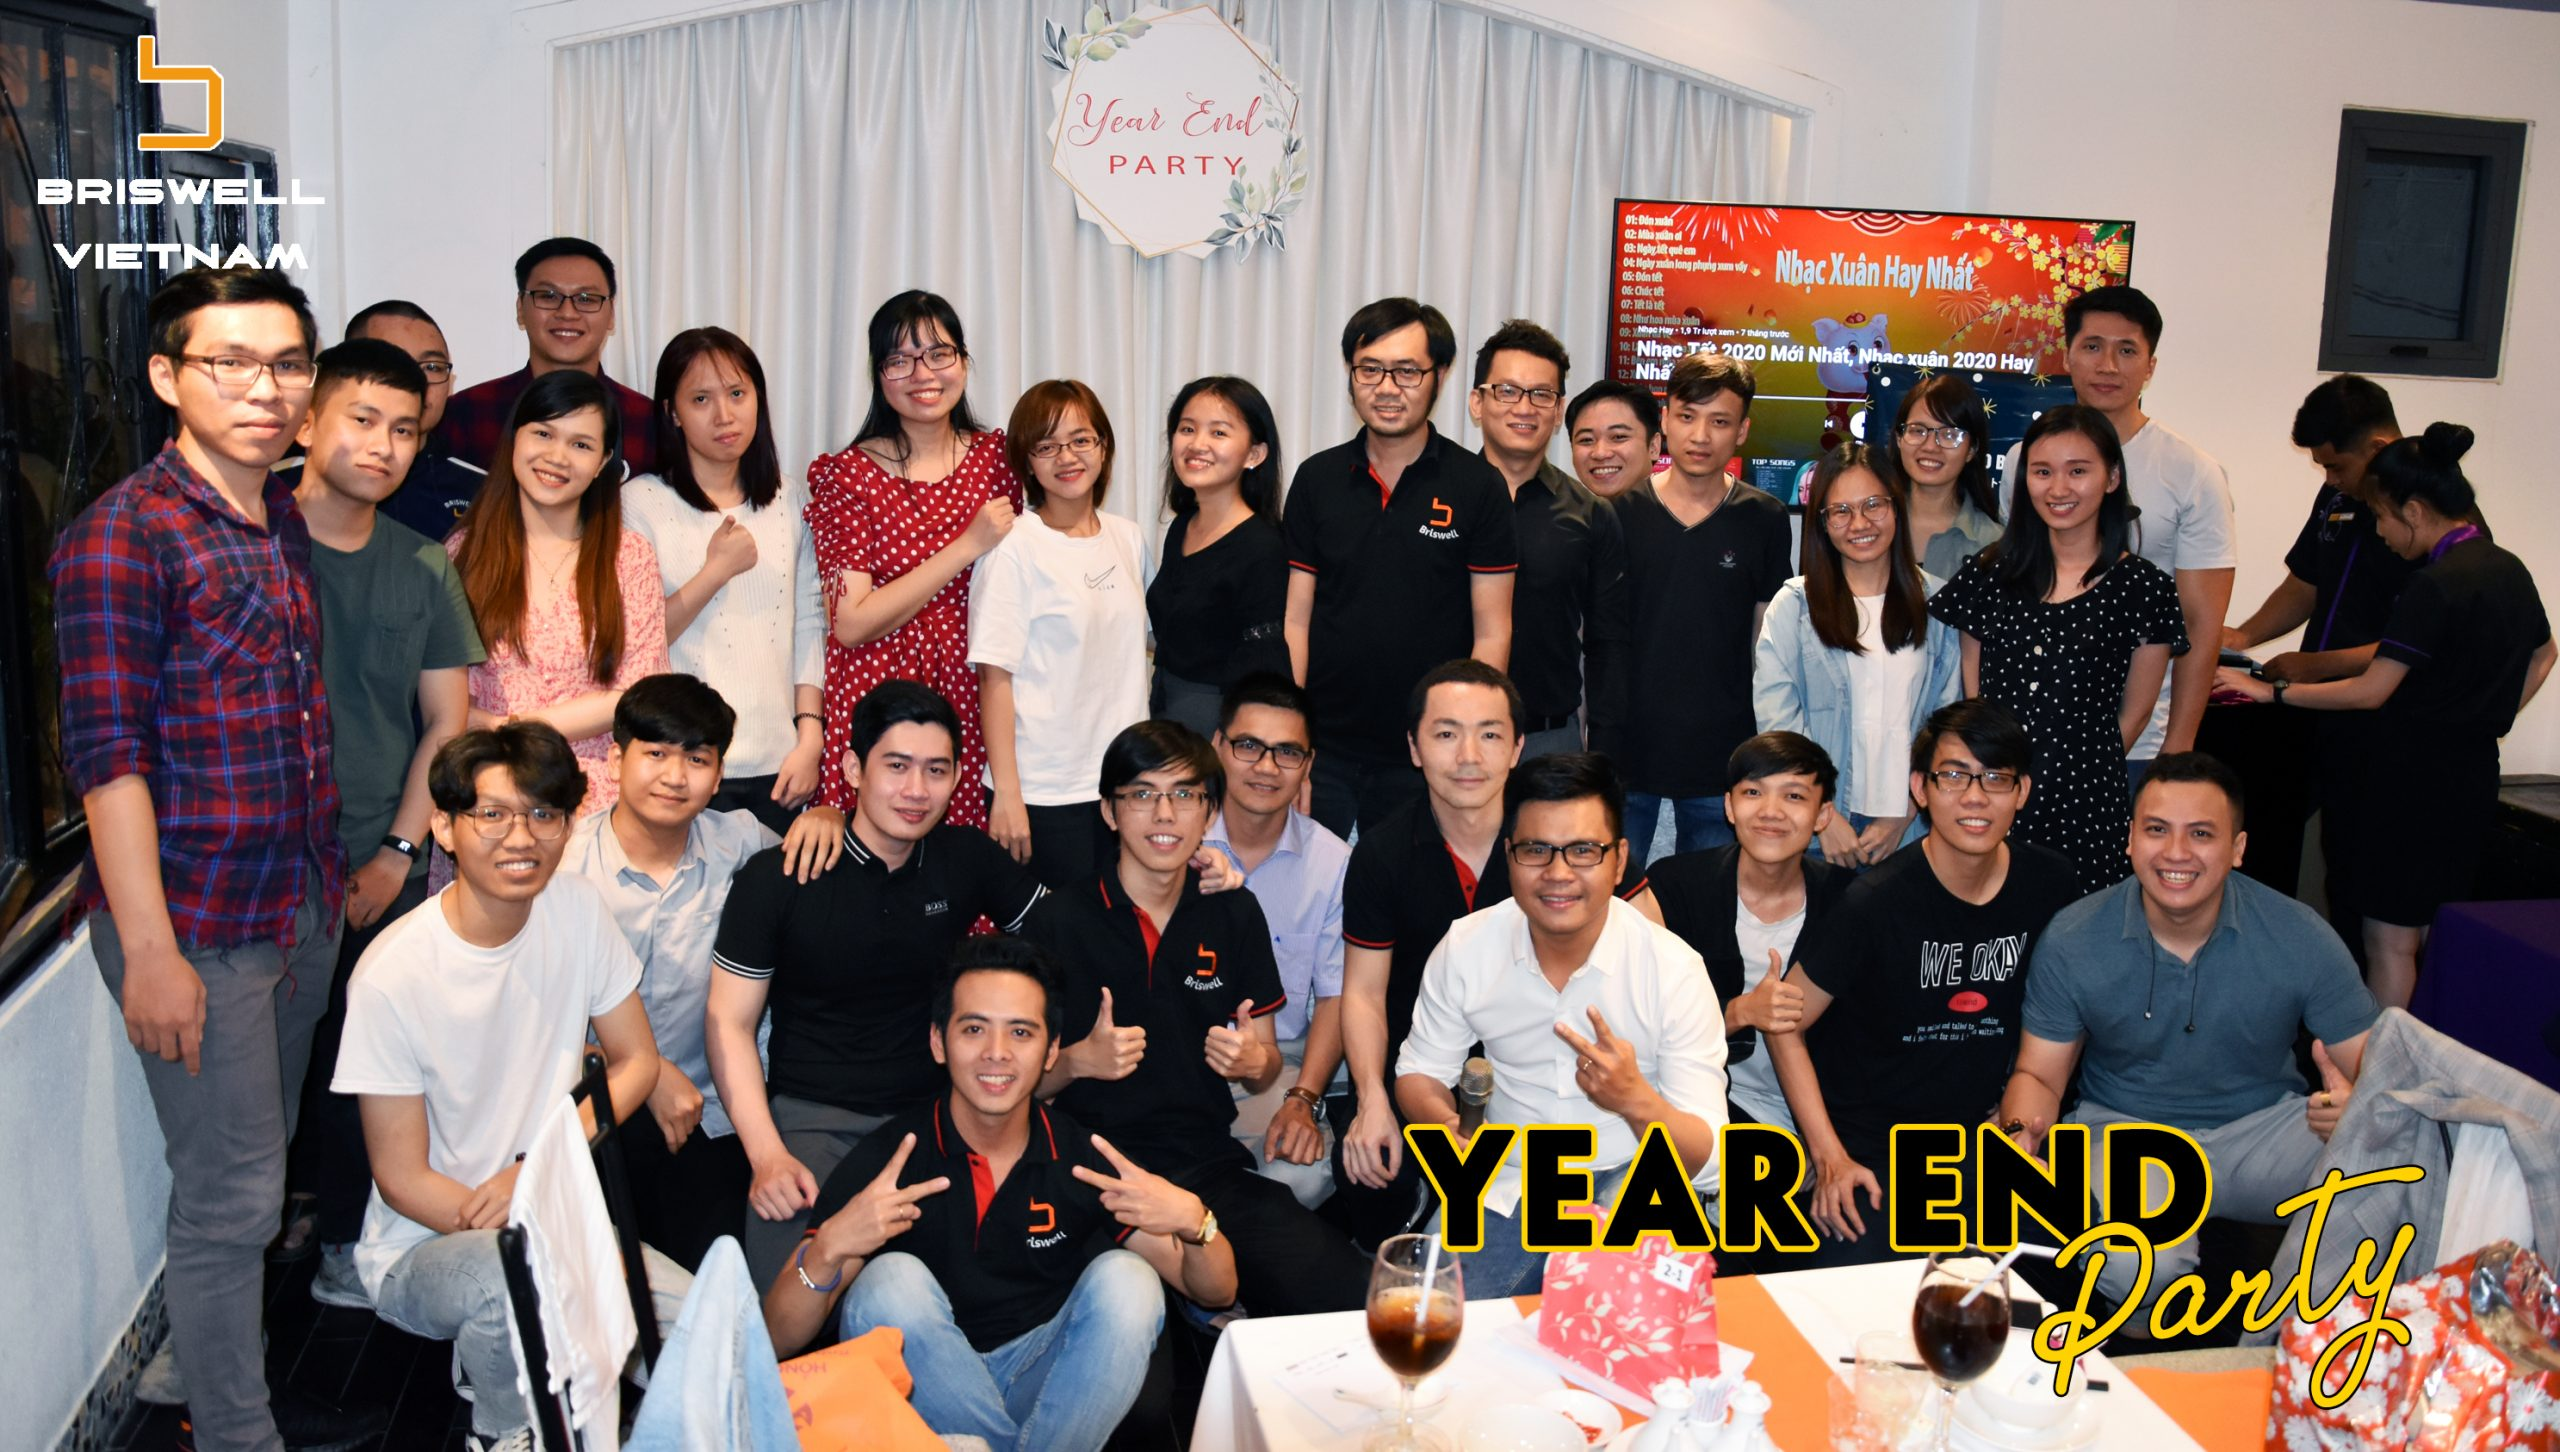 Year End Party 2019 – Briswell Việt Nam